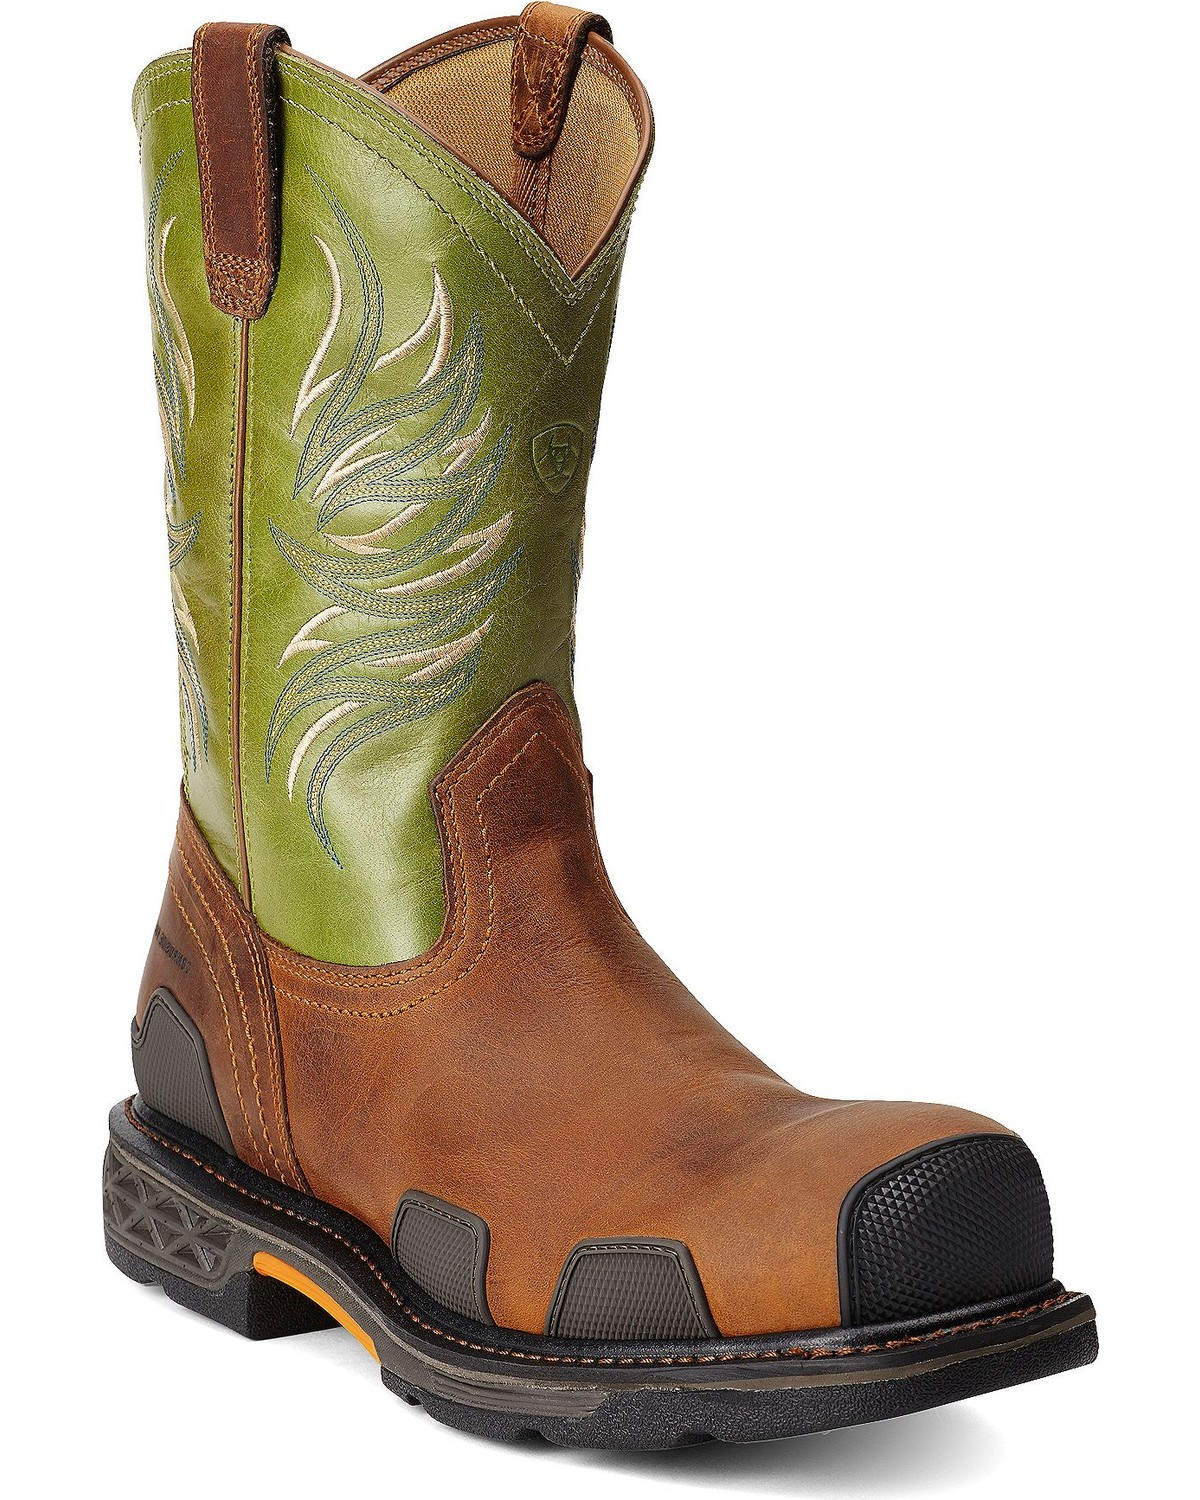 8fa4e14f335 Ariat Men's Overdrive Composite Toe